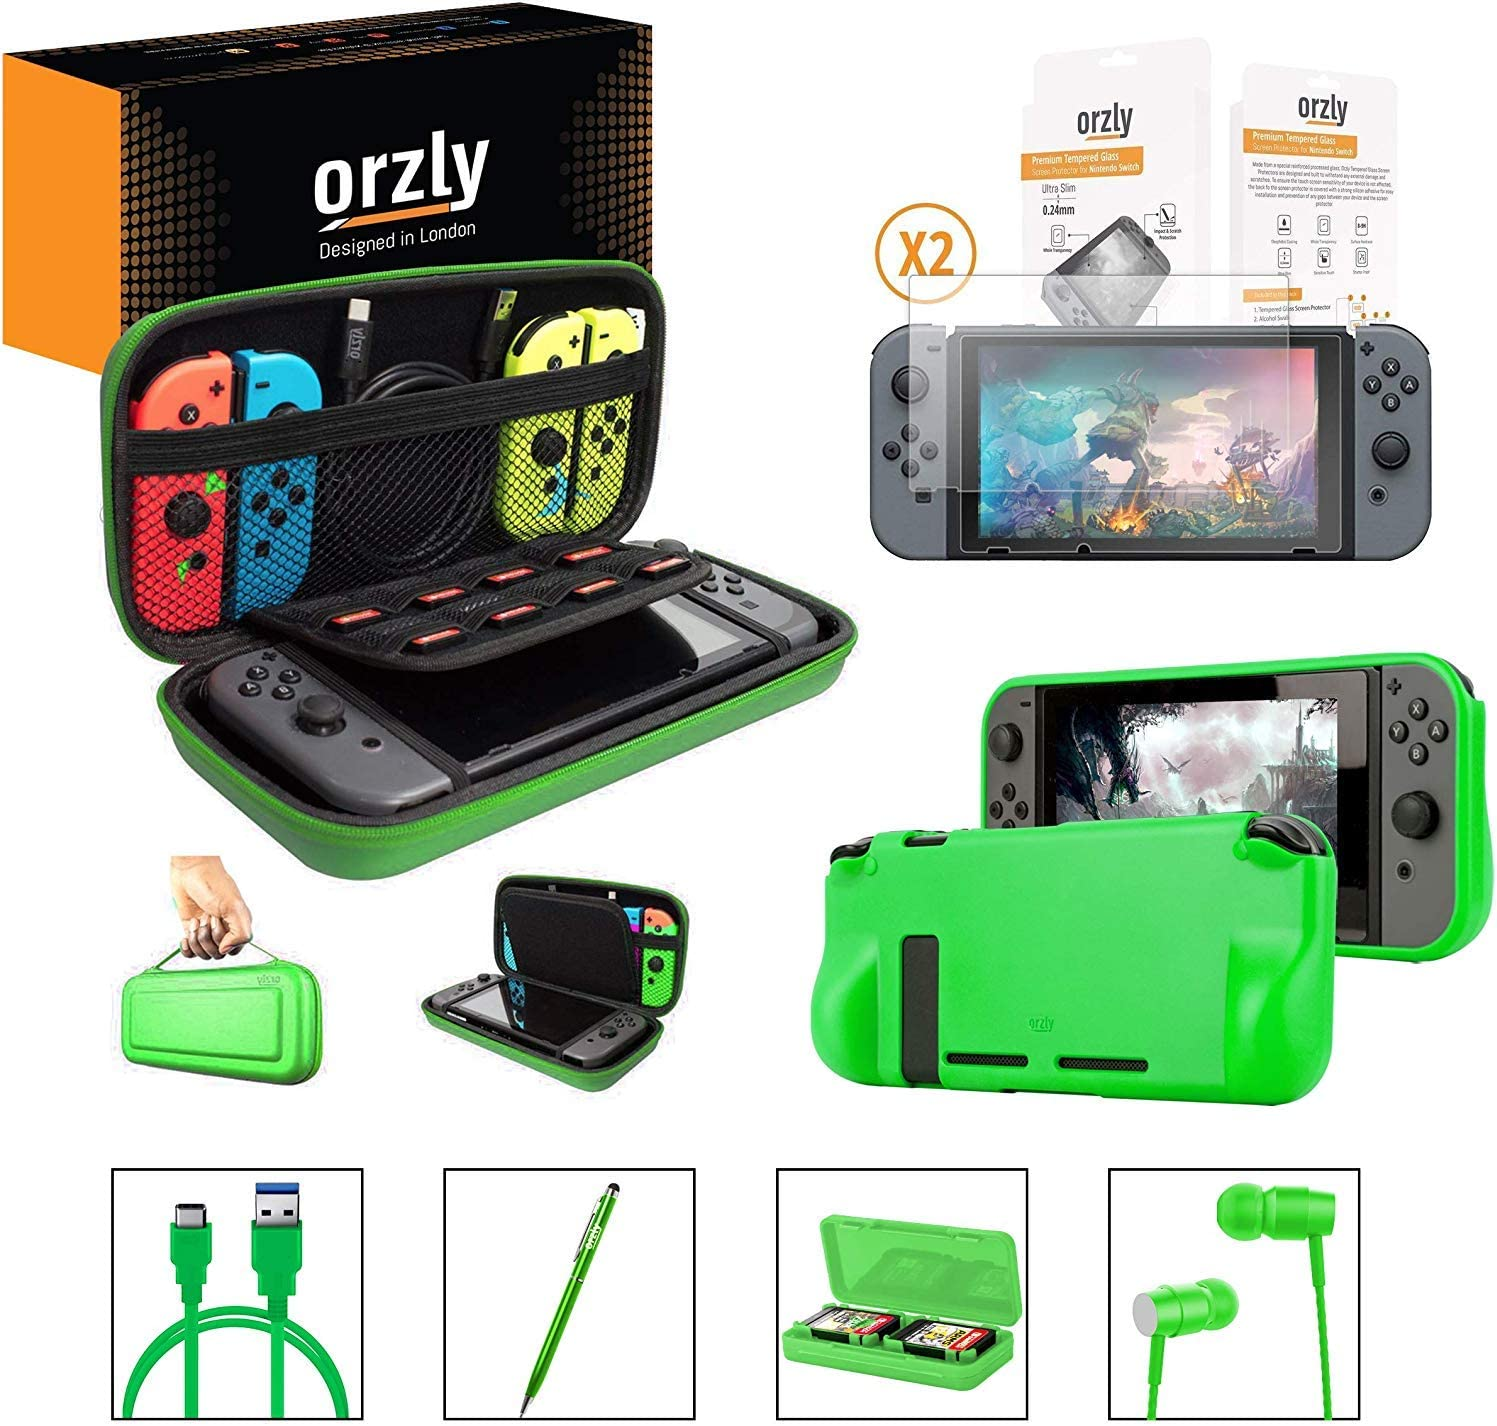 Orzly Switch Accessories Bundle – Includes Orzly Carry Case for Nintendo Switch Console, Tempered Glass Screen Protectors, USB Charging Cable, Switch Games Case, Comfort Grip Case & Headphones [Green]